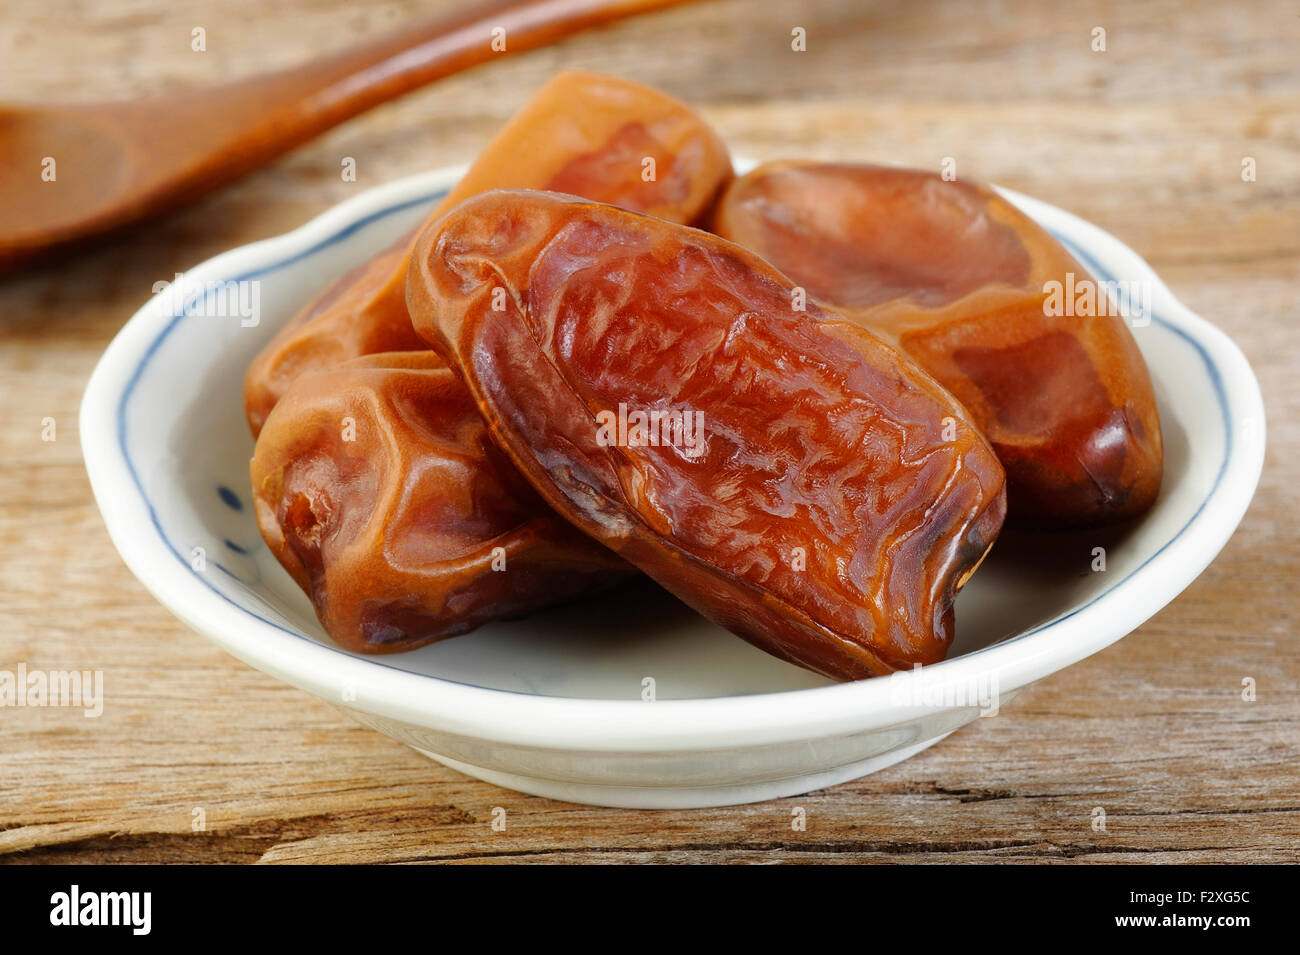 Date fruits in bowl - Stock Image